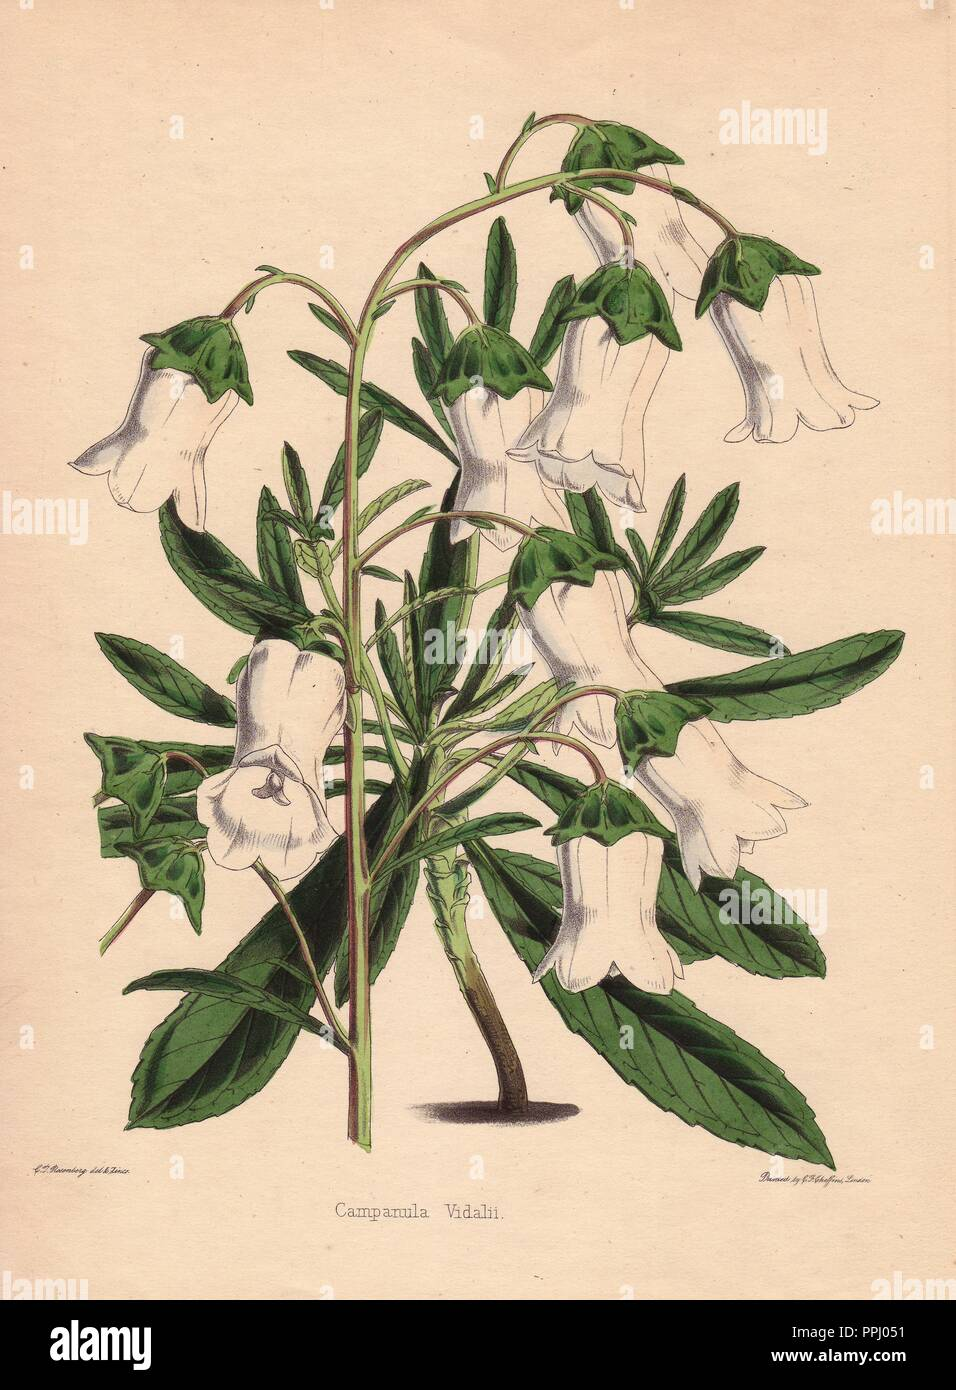 White Bellflower Campanula Vidalii Drawn And Zincographed By C T